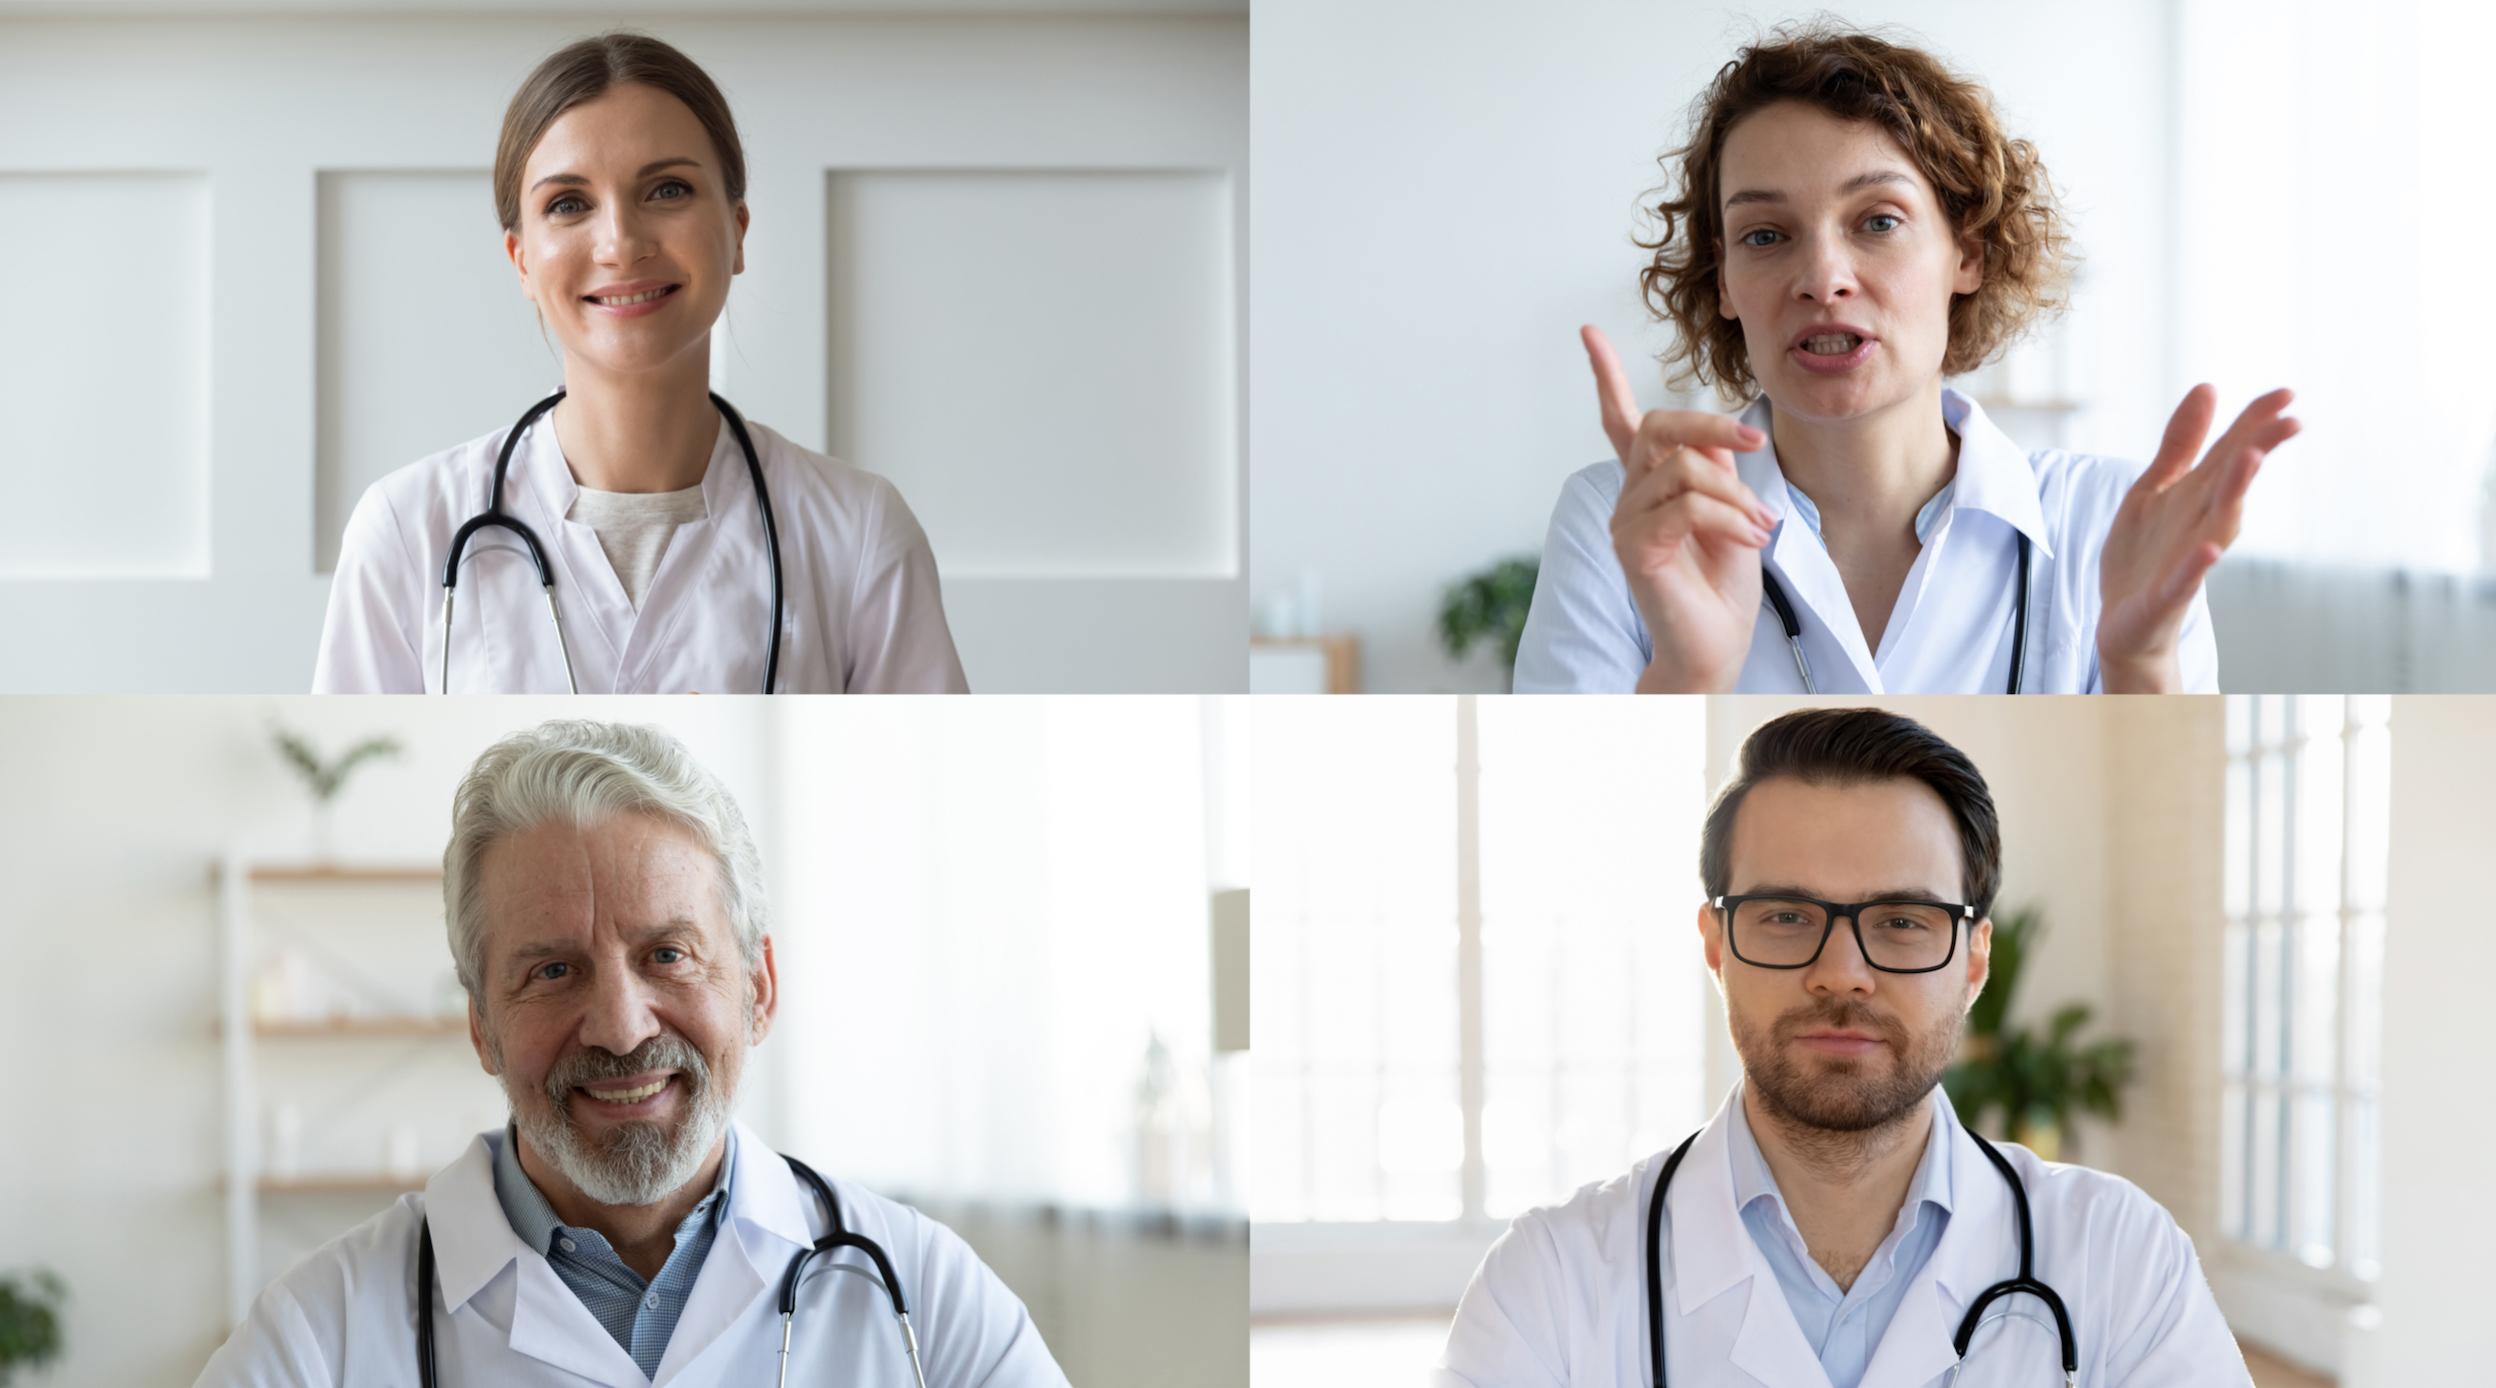 5 Ways to Grow Your Practice by Building Authority